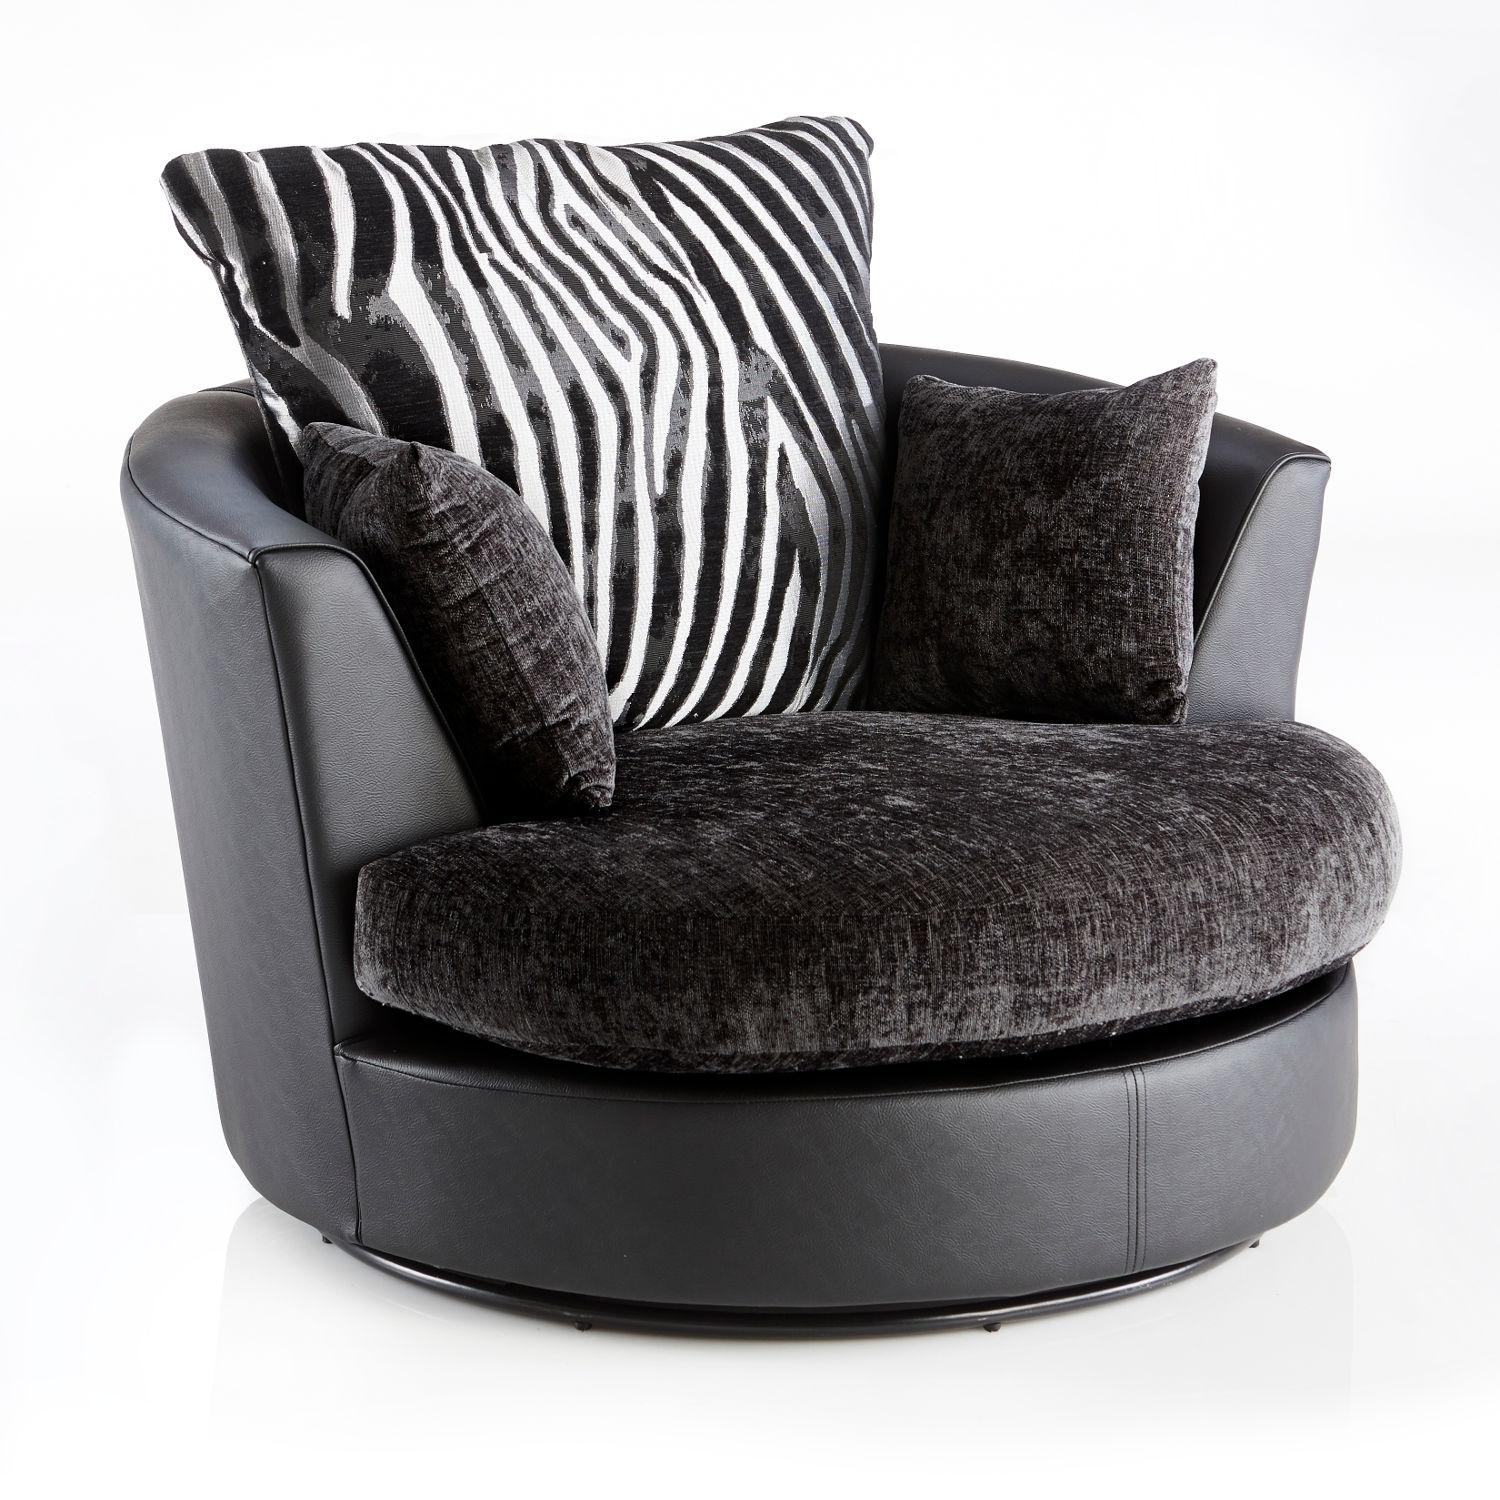 Mulberry Swivel Chair – Next Day Delivery Mulberry Swivel Chair Within Sofas With Swivel Chair (View 4 of 10)